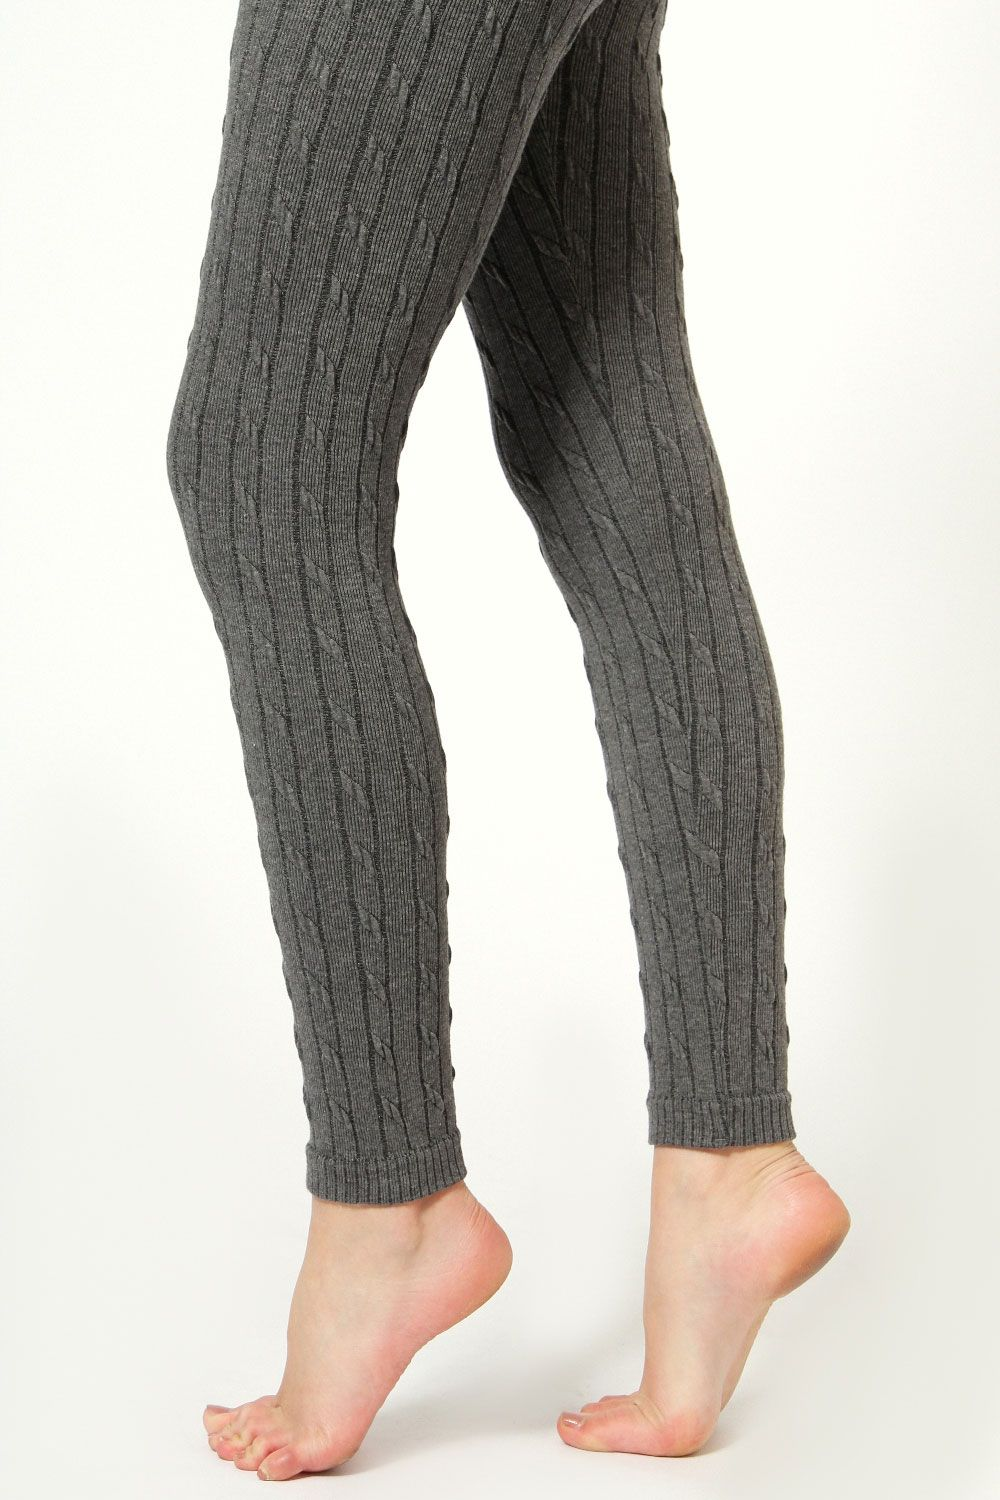 7beabf0c8e77b Cable Knit Leggings (already have a charcoal colour - maybe a dark colour  like burgundy or dark green)